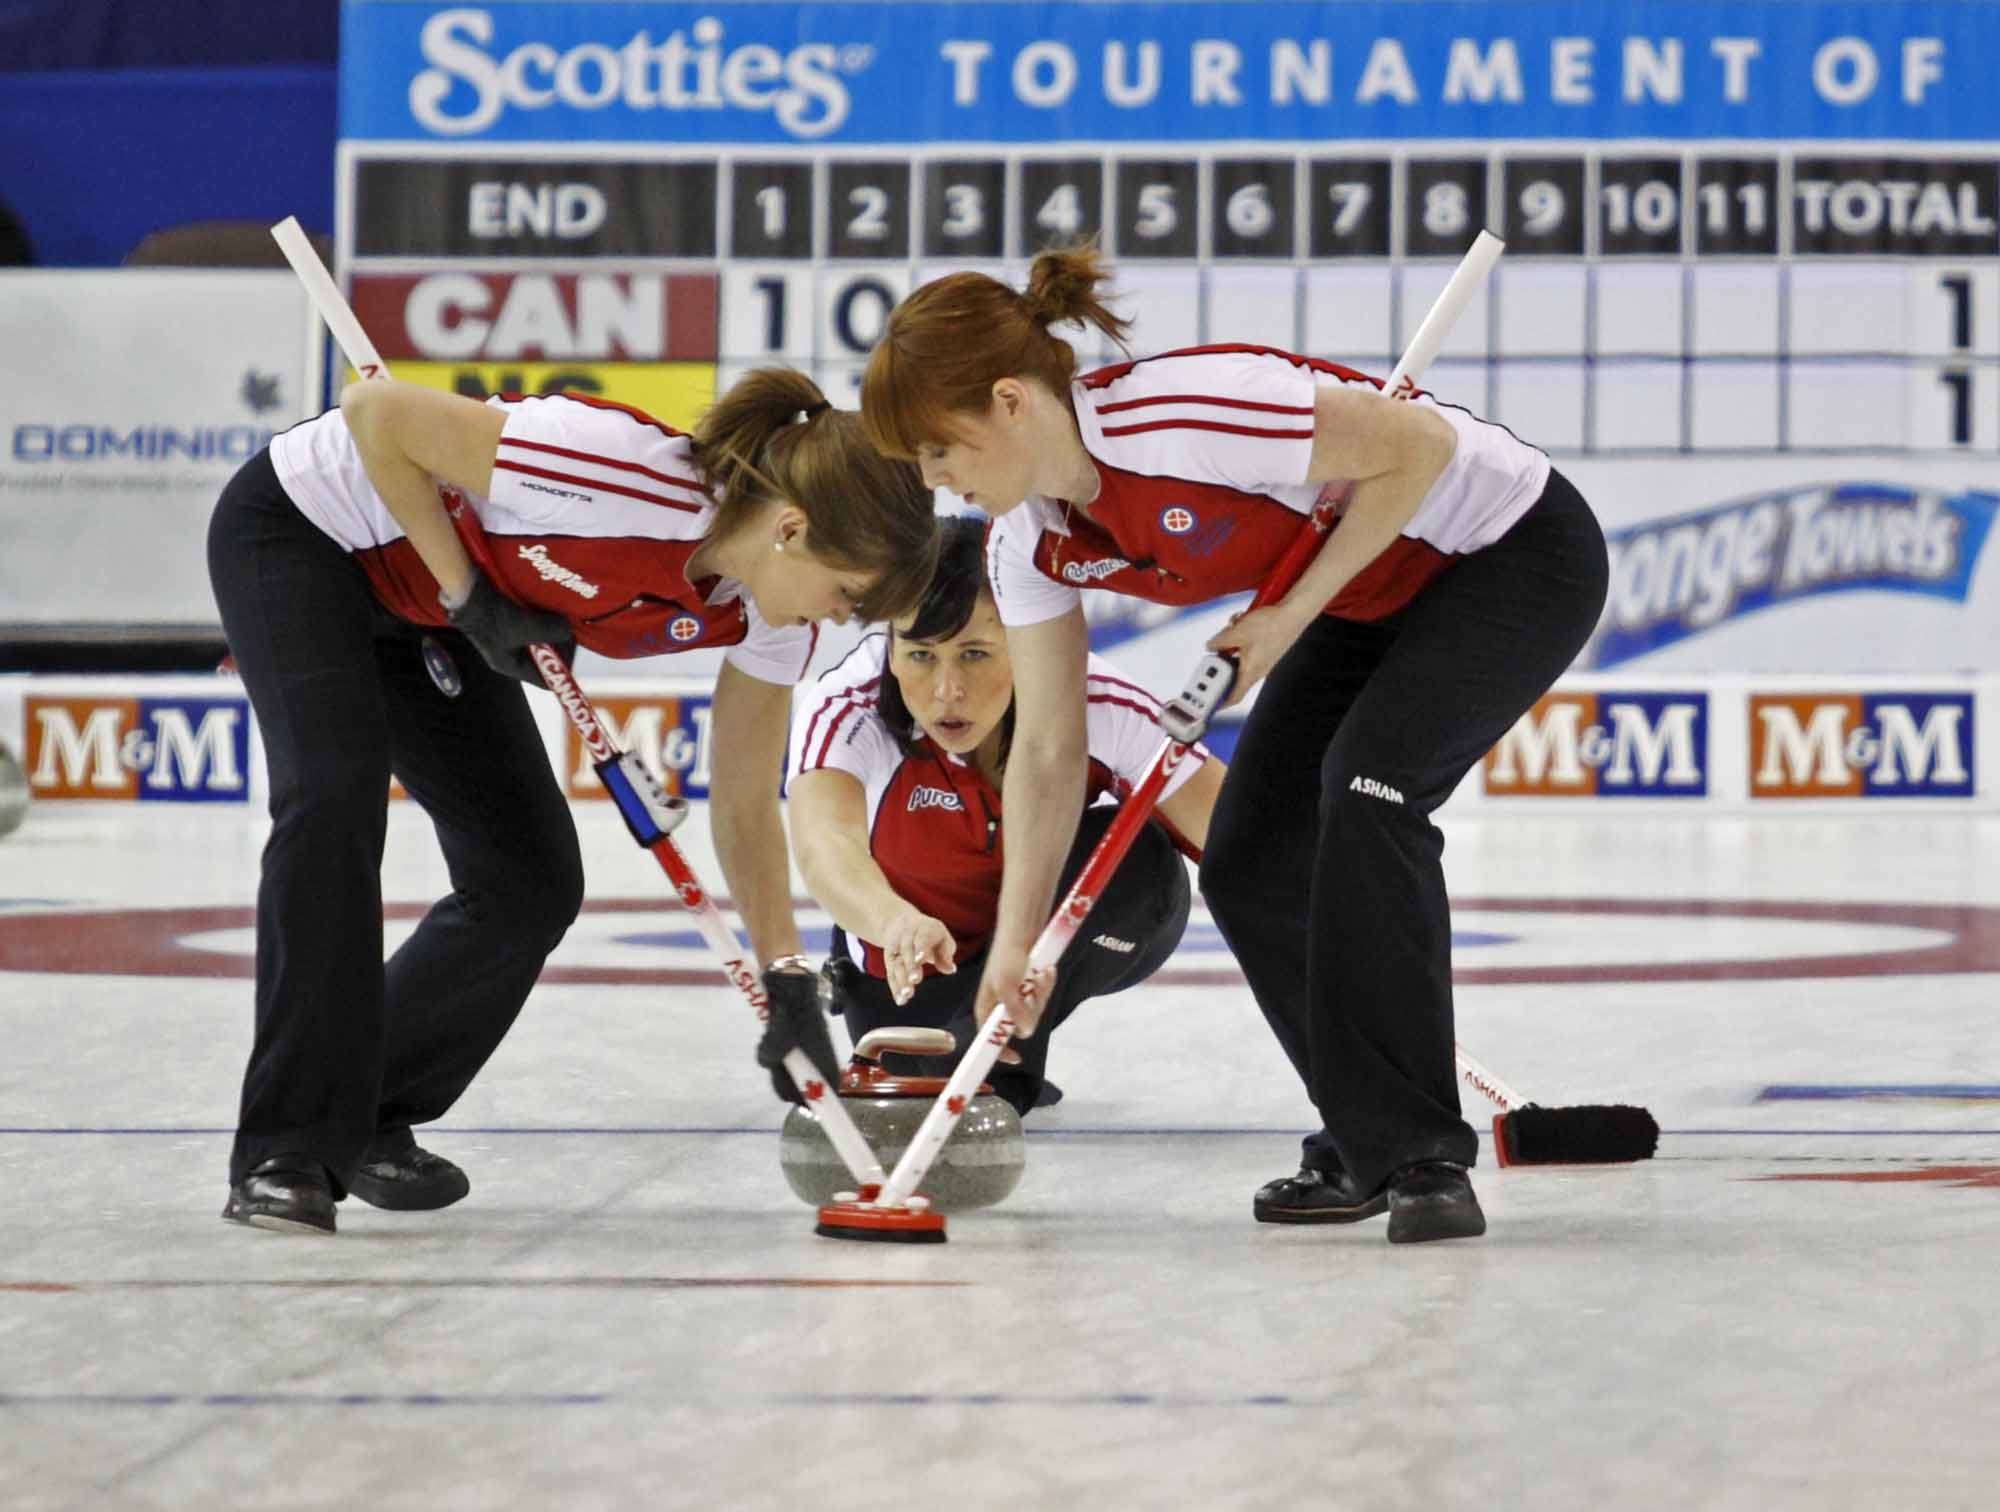 Scotties Curling Sweep